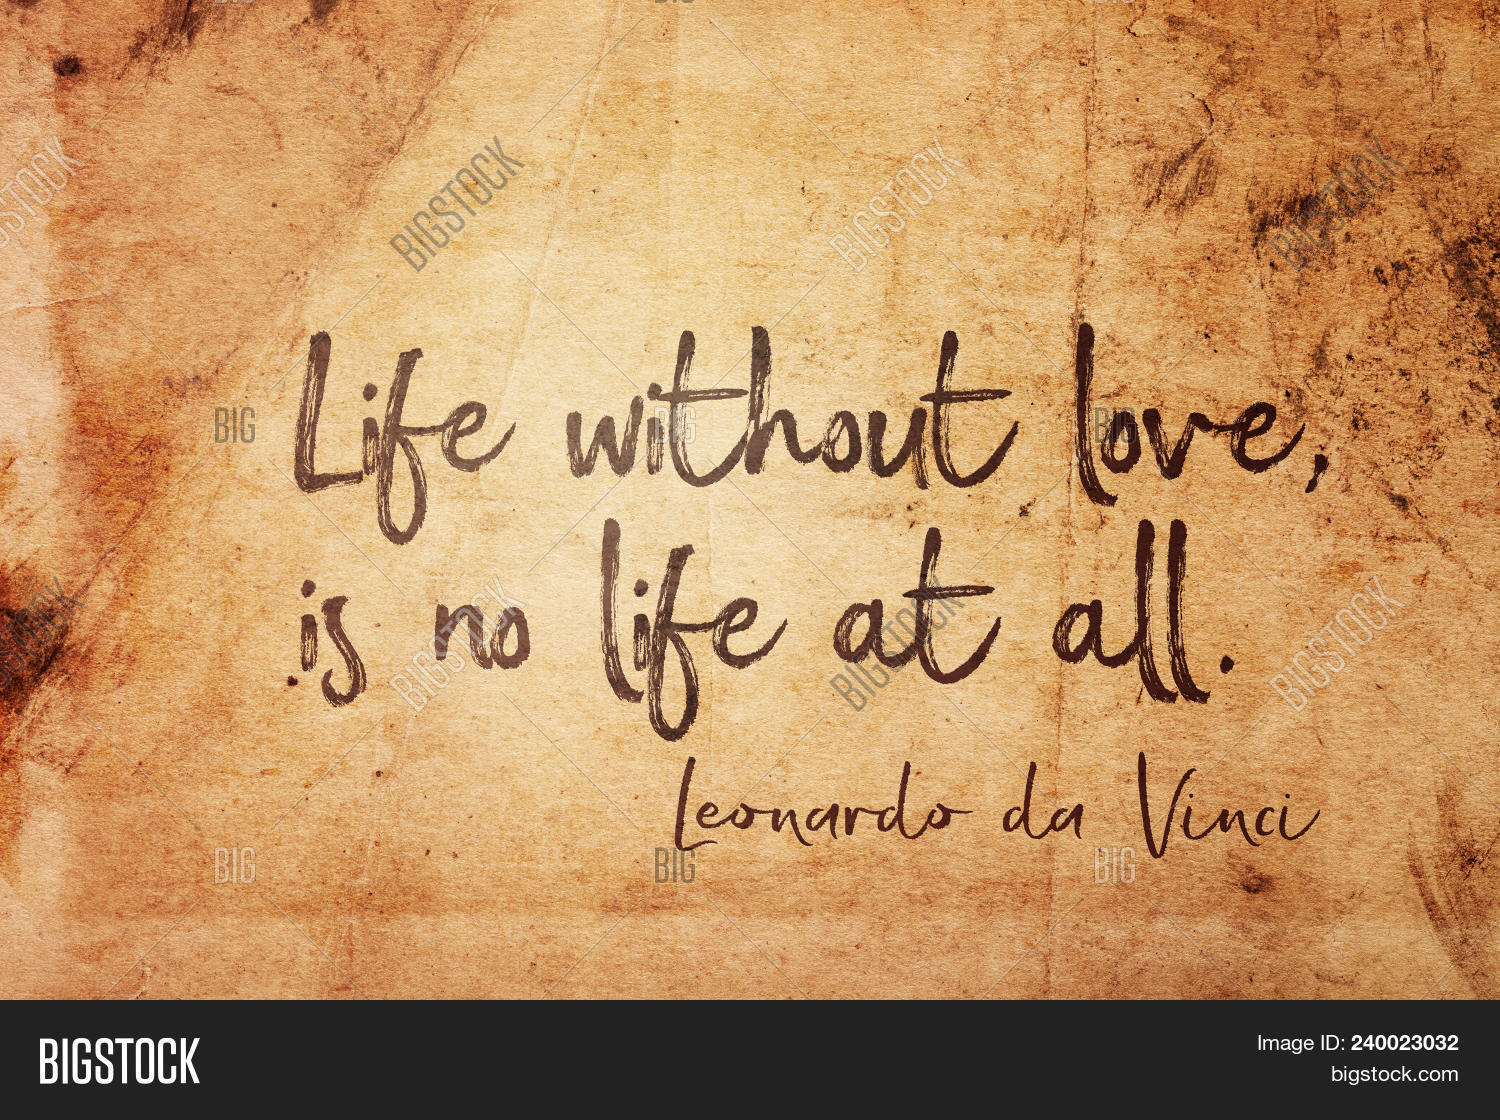 Life Without Love No Image Photo Free Trial Bigstock